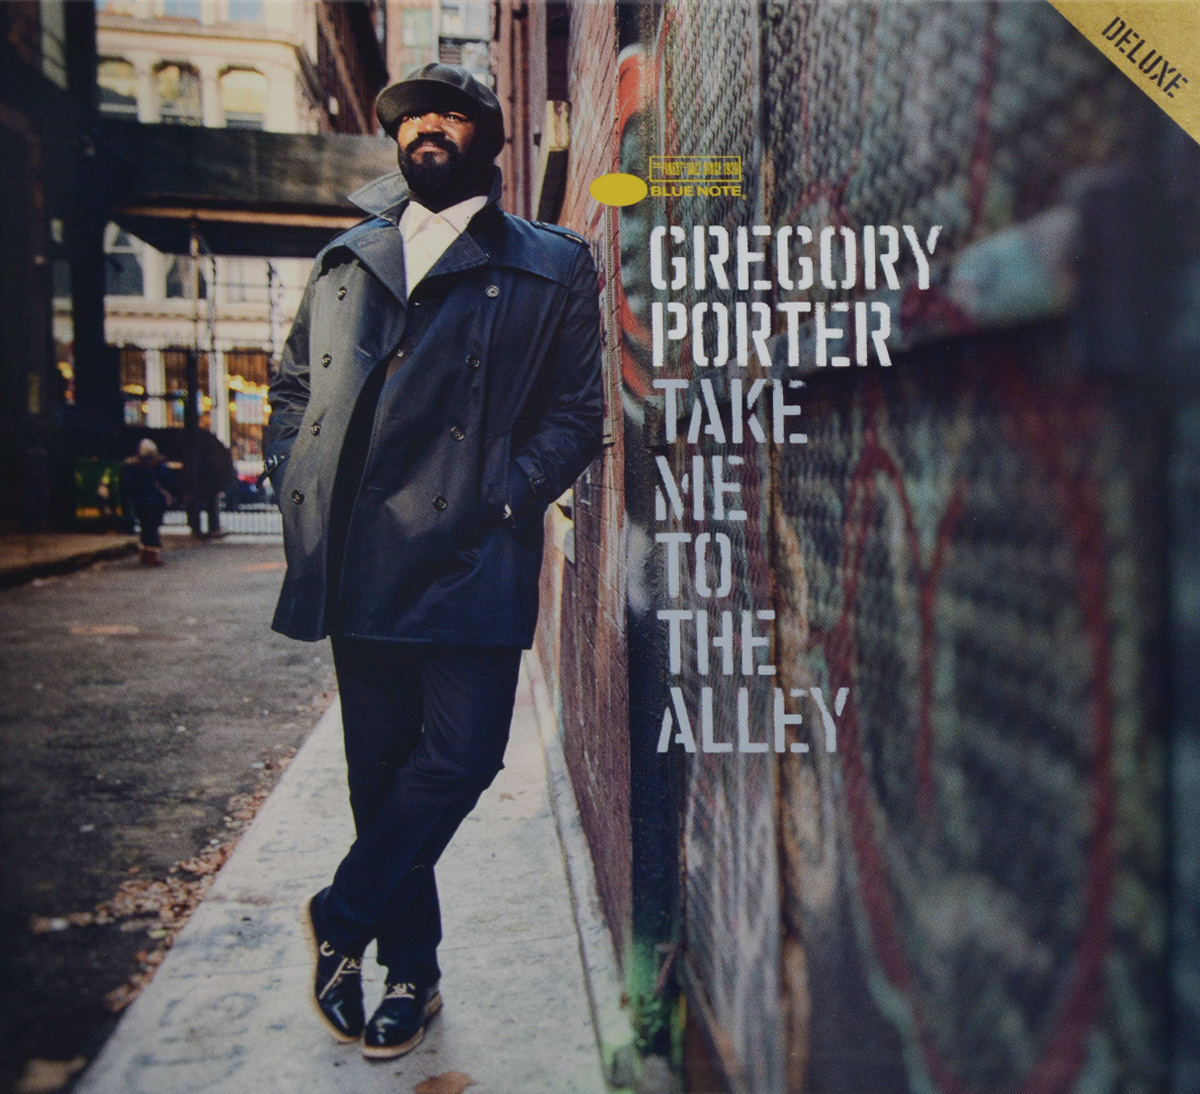 Грегори Портер Gregory Porter. Take Me To The Alley. Deluxe Edition (CD + DVD) michael jackson xscape – deluxe edition cd dvd